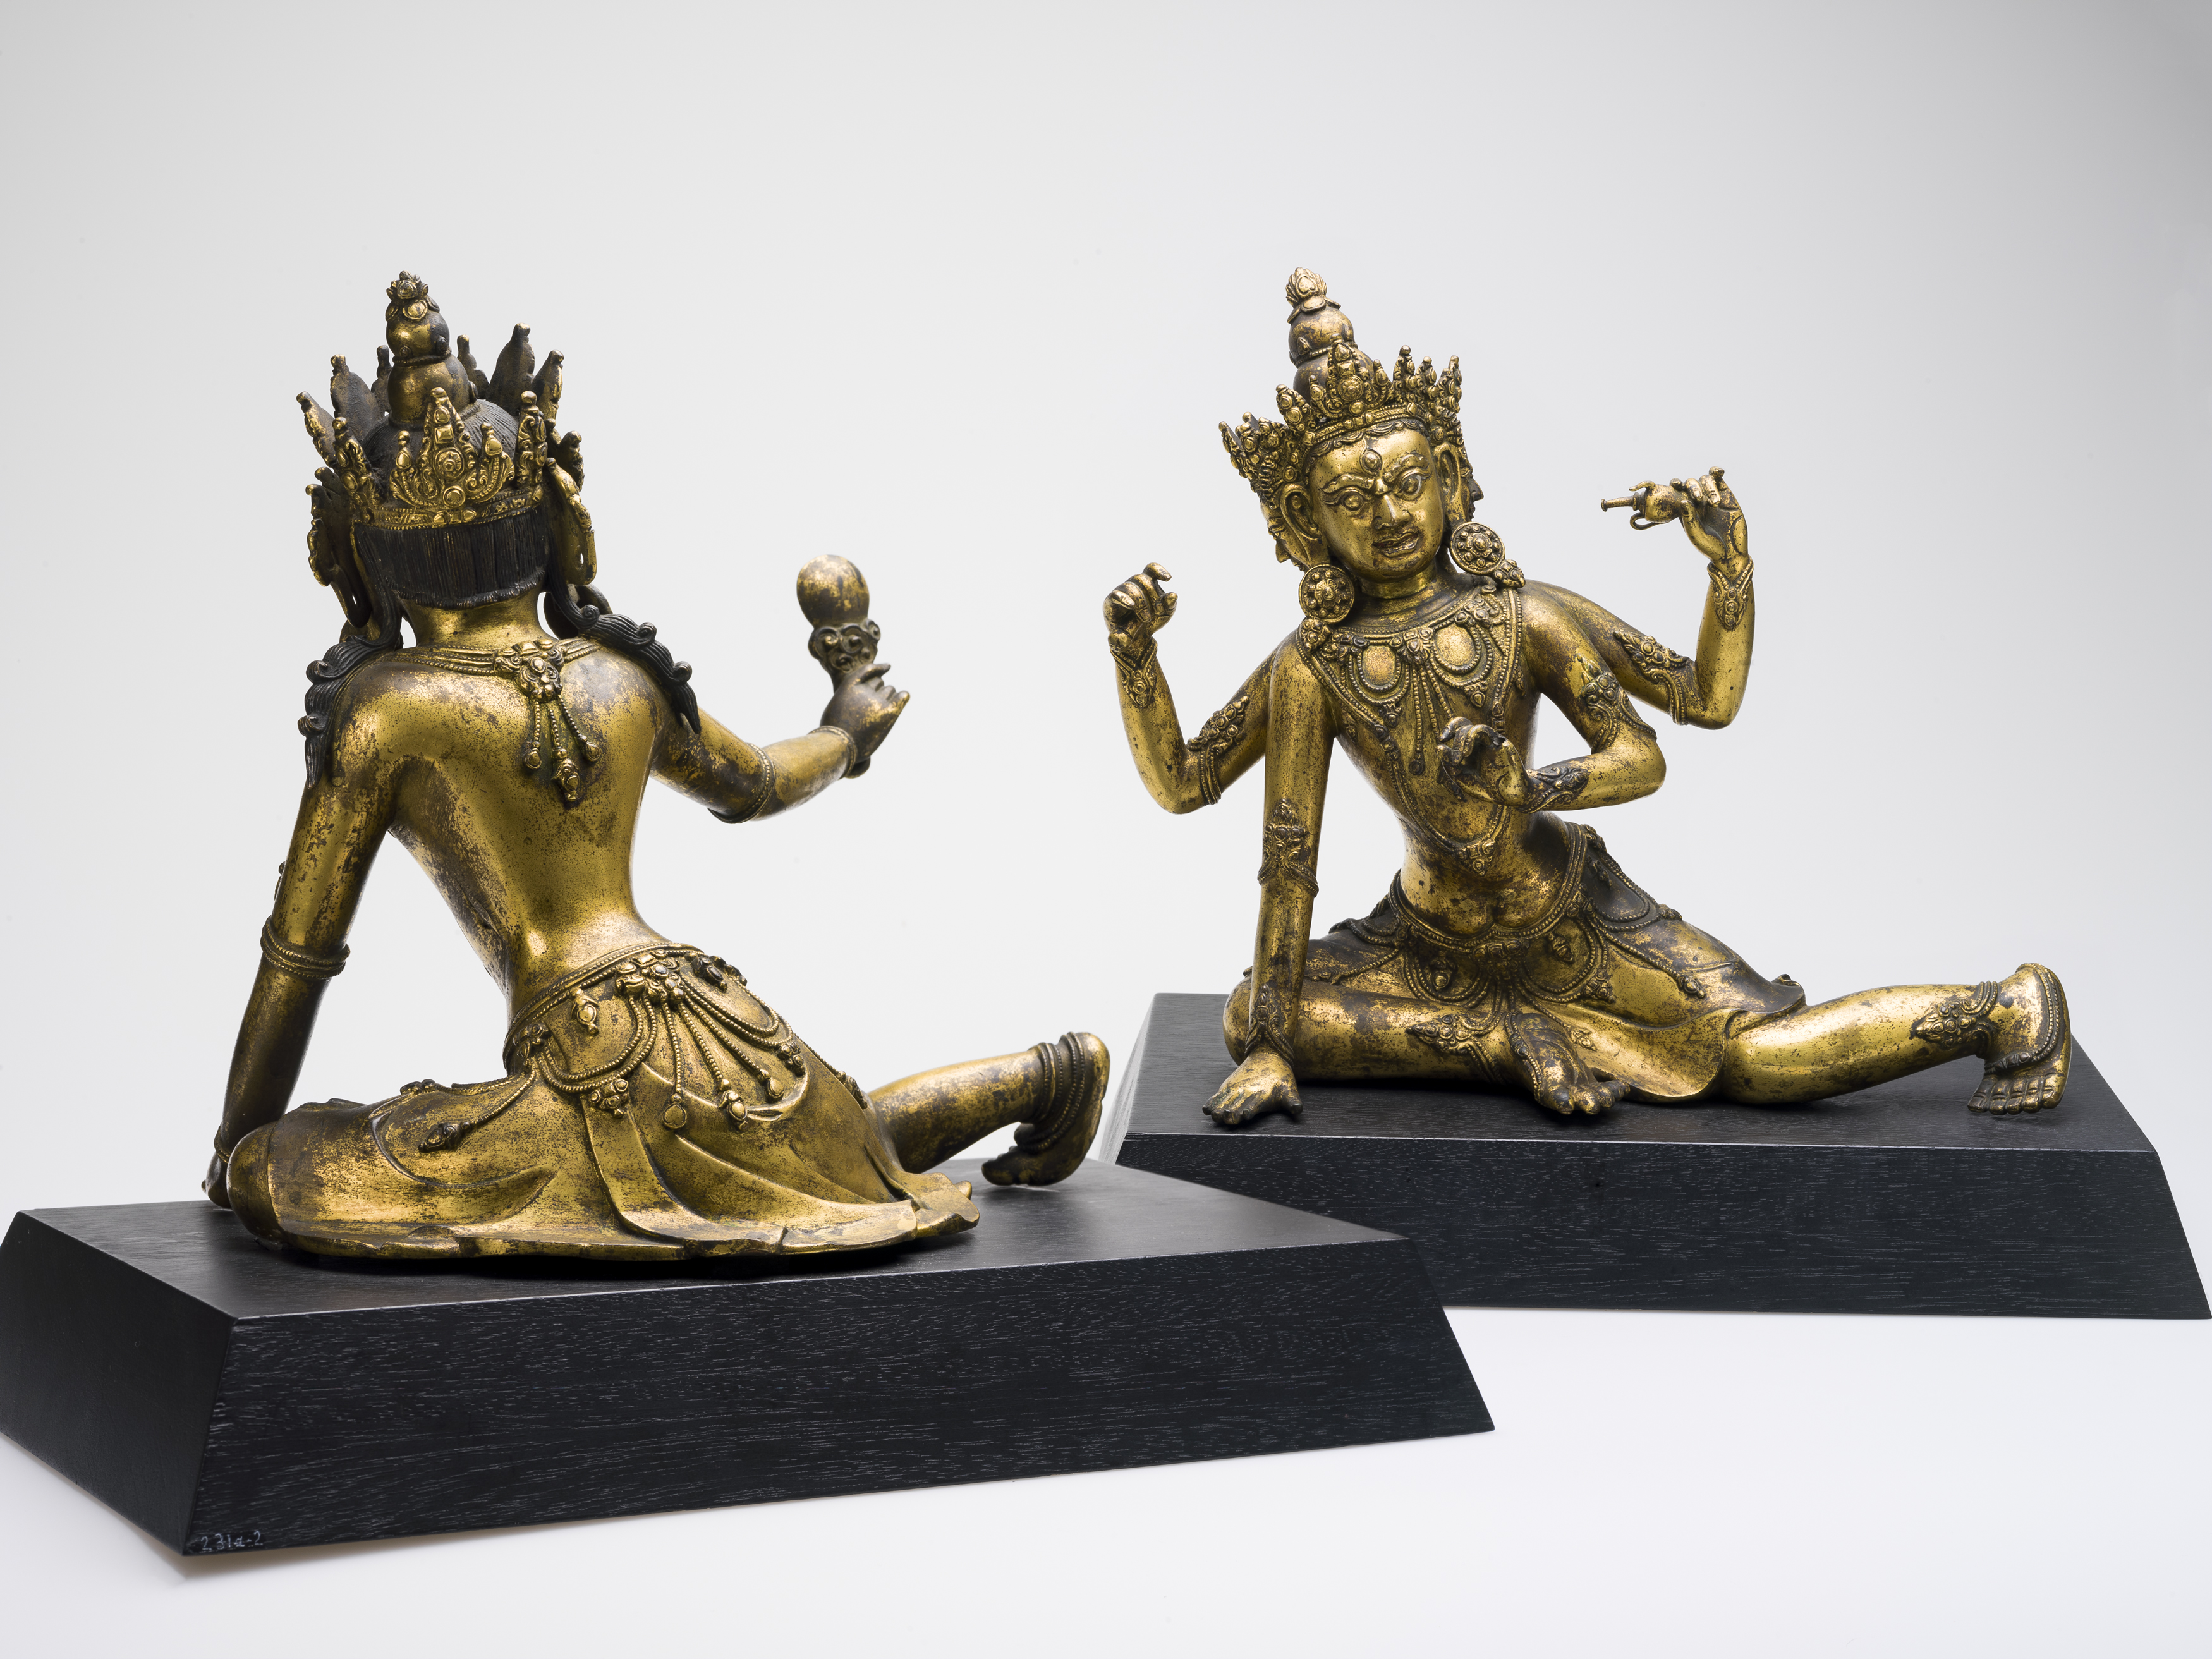 An image of two deity figures looking each other.